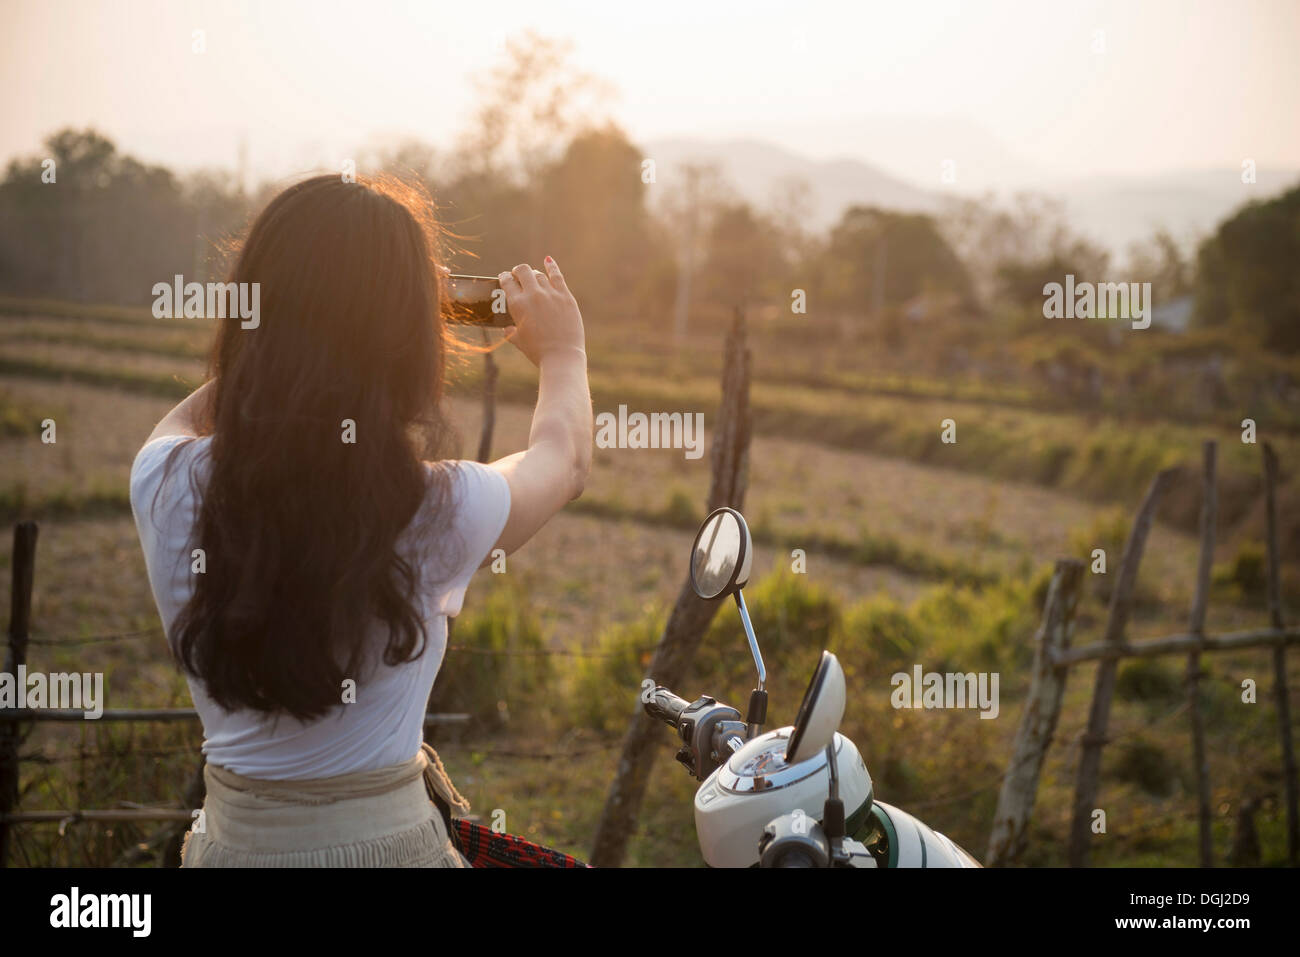 Woman on moped taking photograph in rural scene - Stock Image